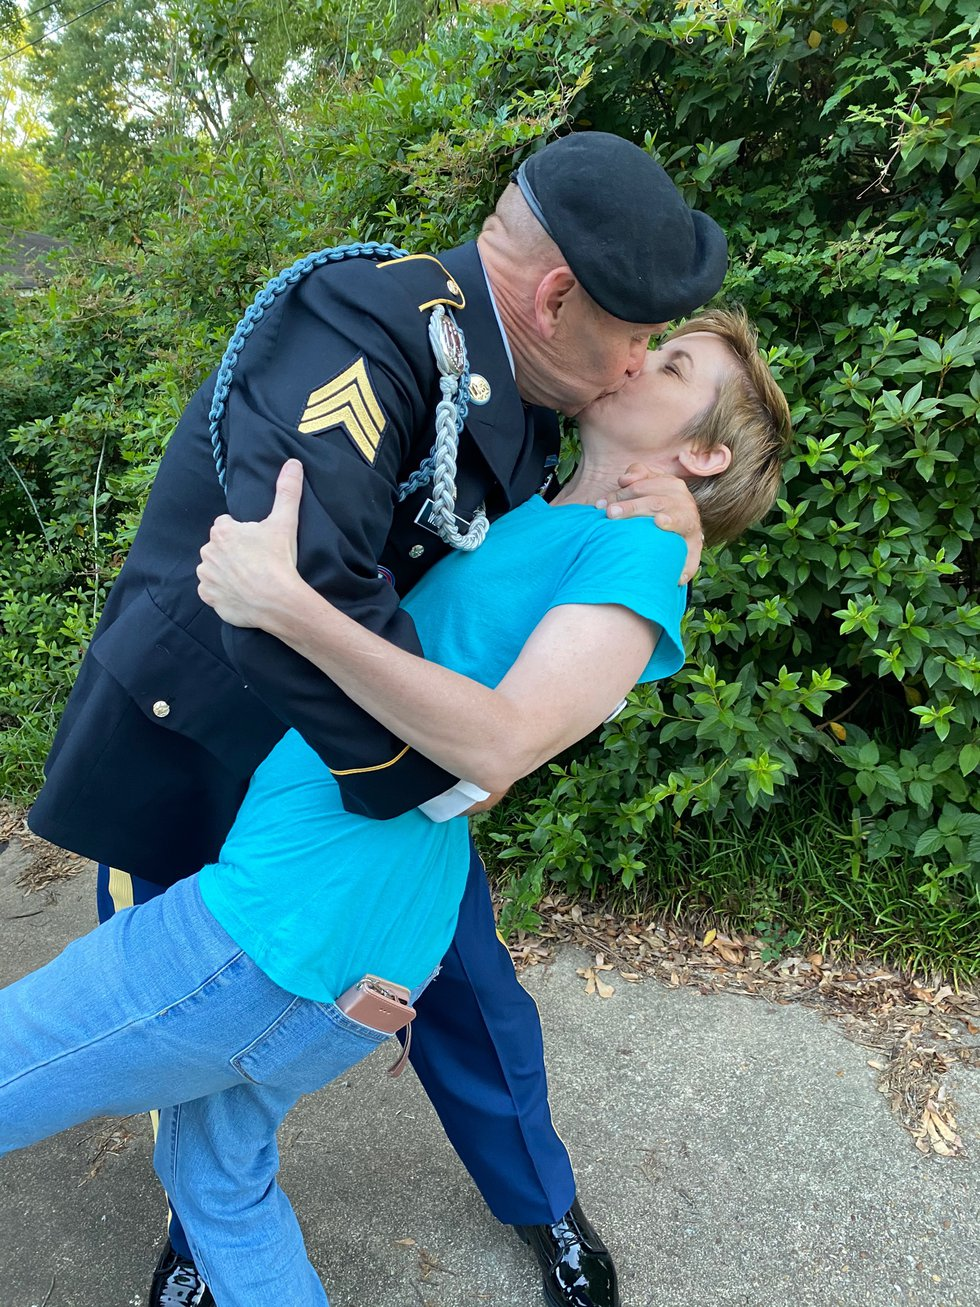 Sgt. Gary Willford Jr., shares a celebratory kiss with his wife after graduating from basic...